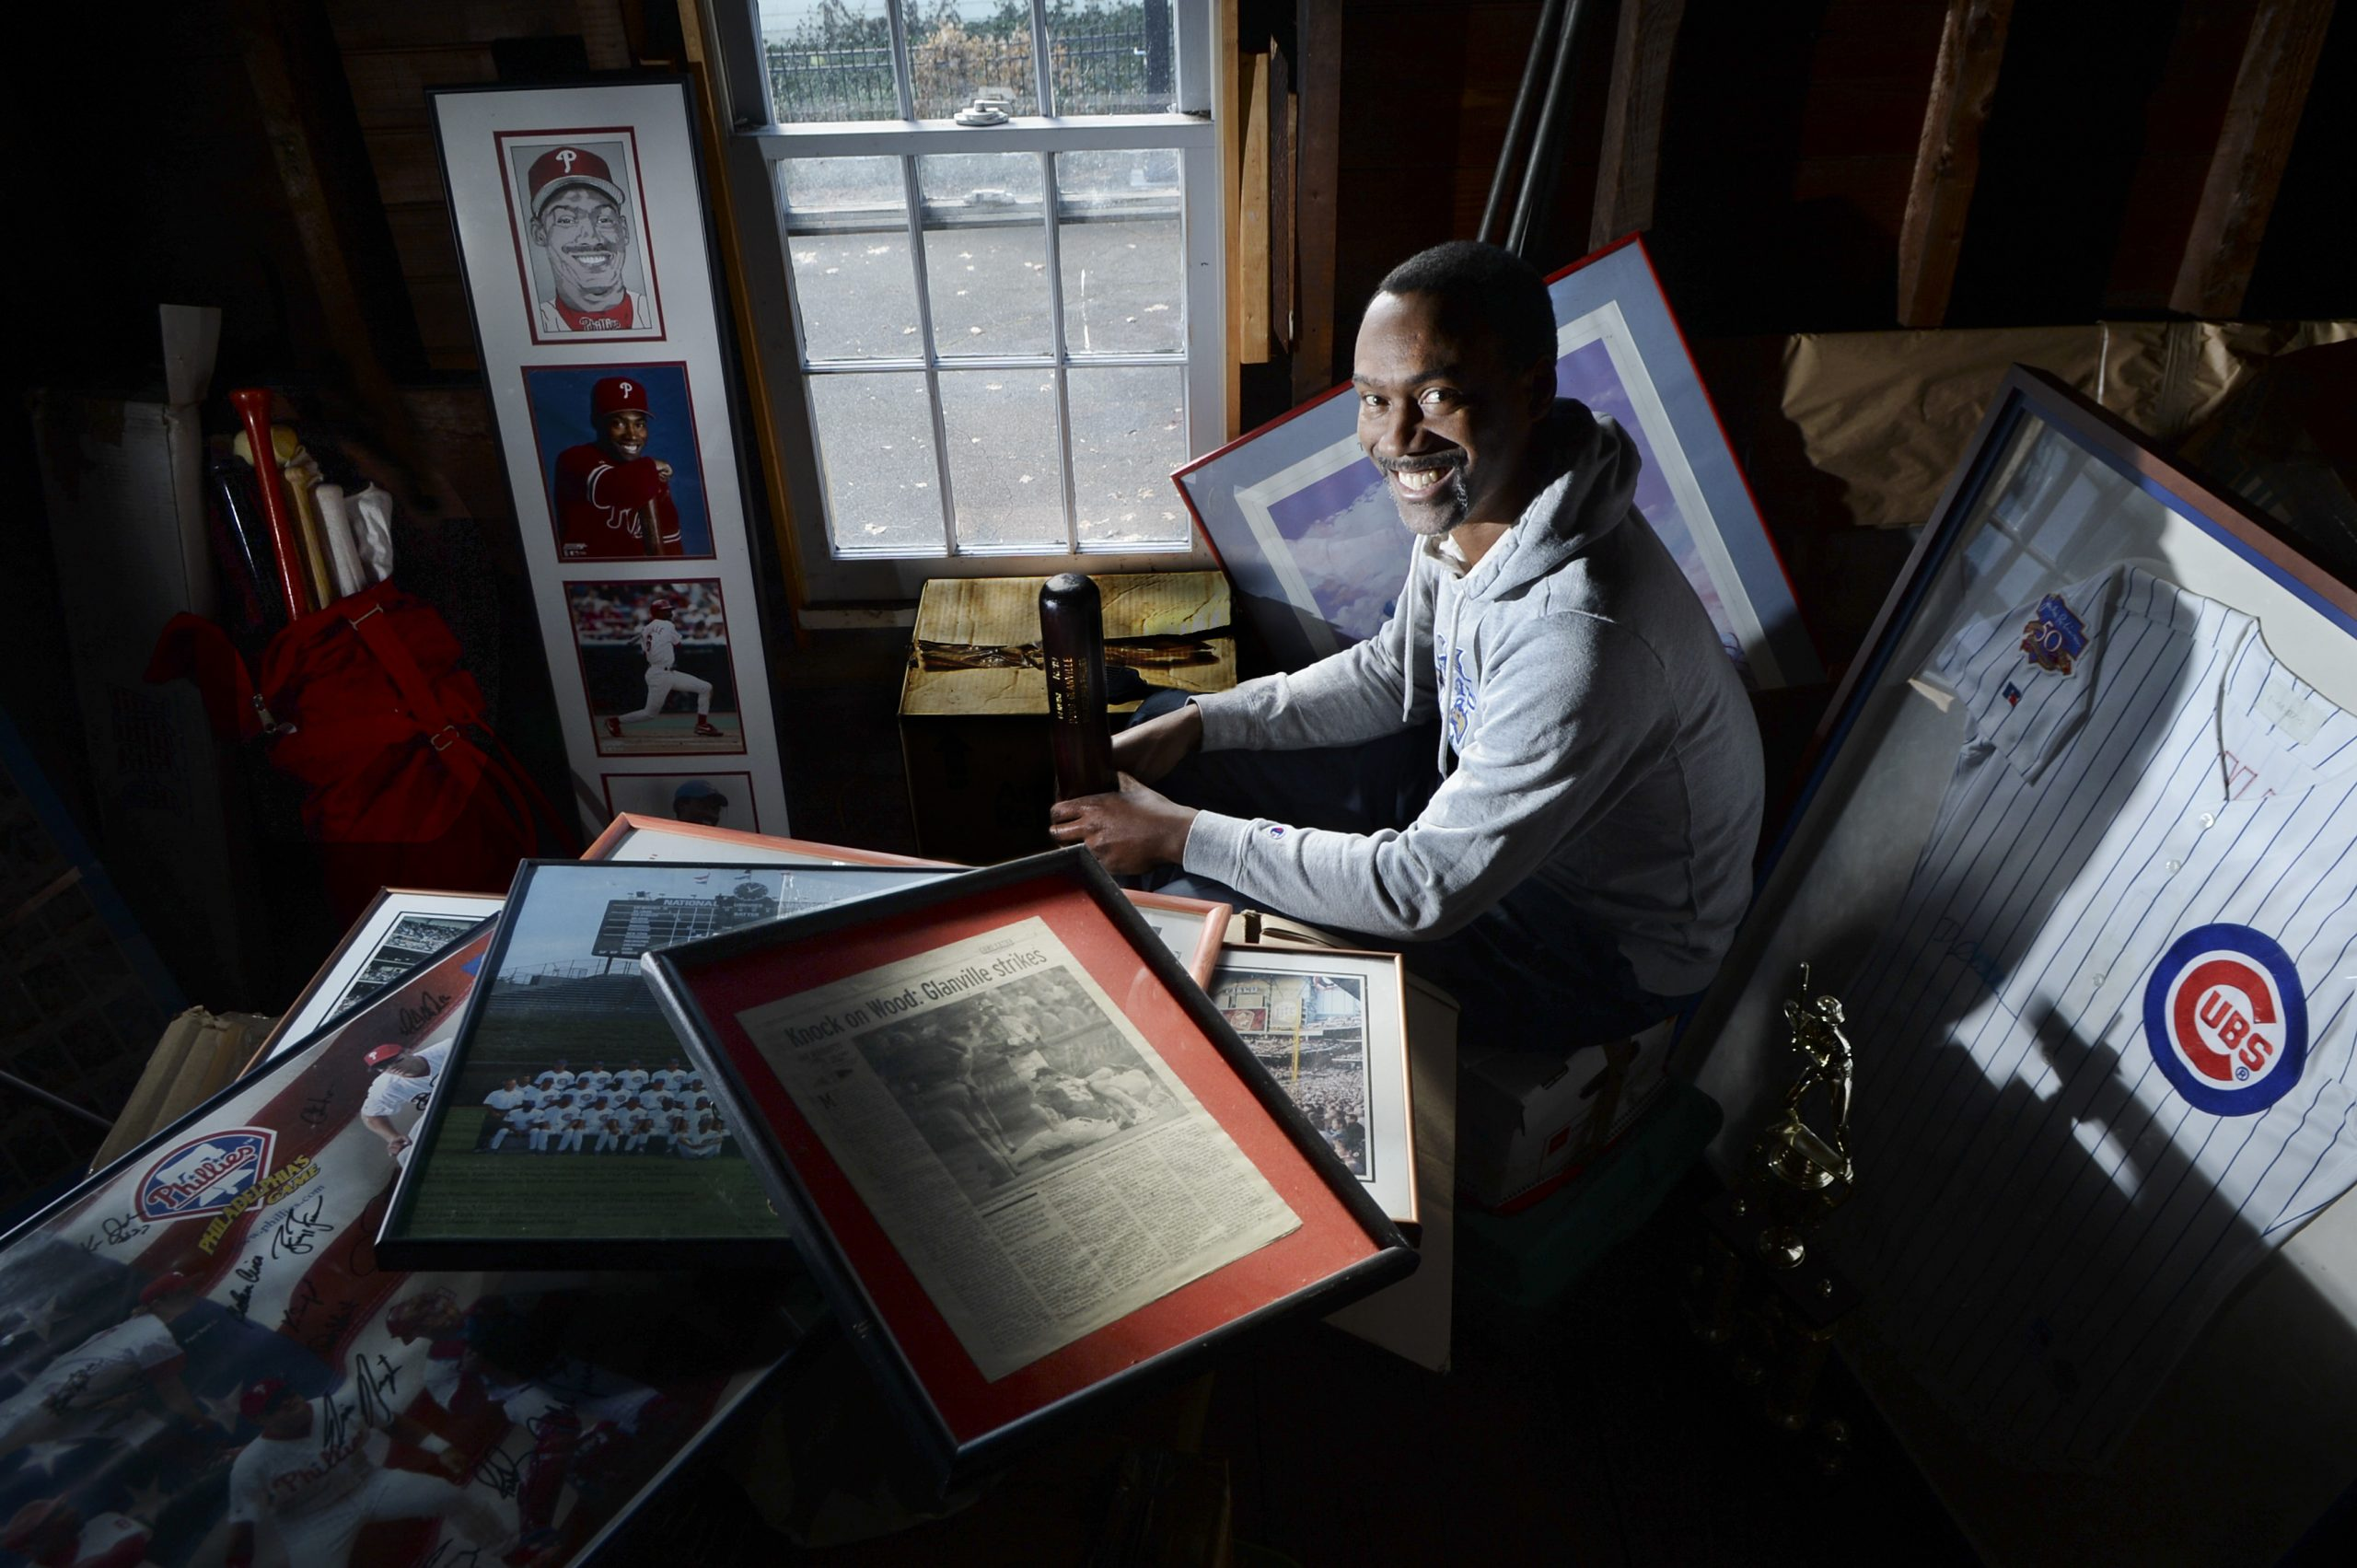 Doug Glanville, the former MLB star who played for nine years in the big leagues, with the Phillies, Cubs and Texans, has an eclectic collection of personal baseball memorabilia stored in the attic over the garage at his west end home. Among the collection in the dusty attic are signed bats, framed articles and portraits of the star player.